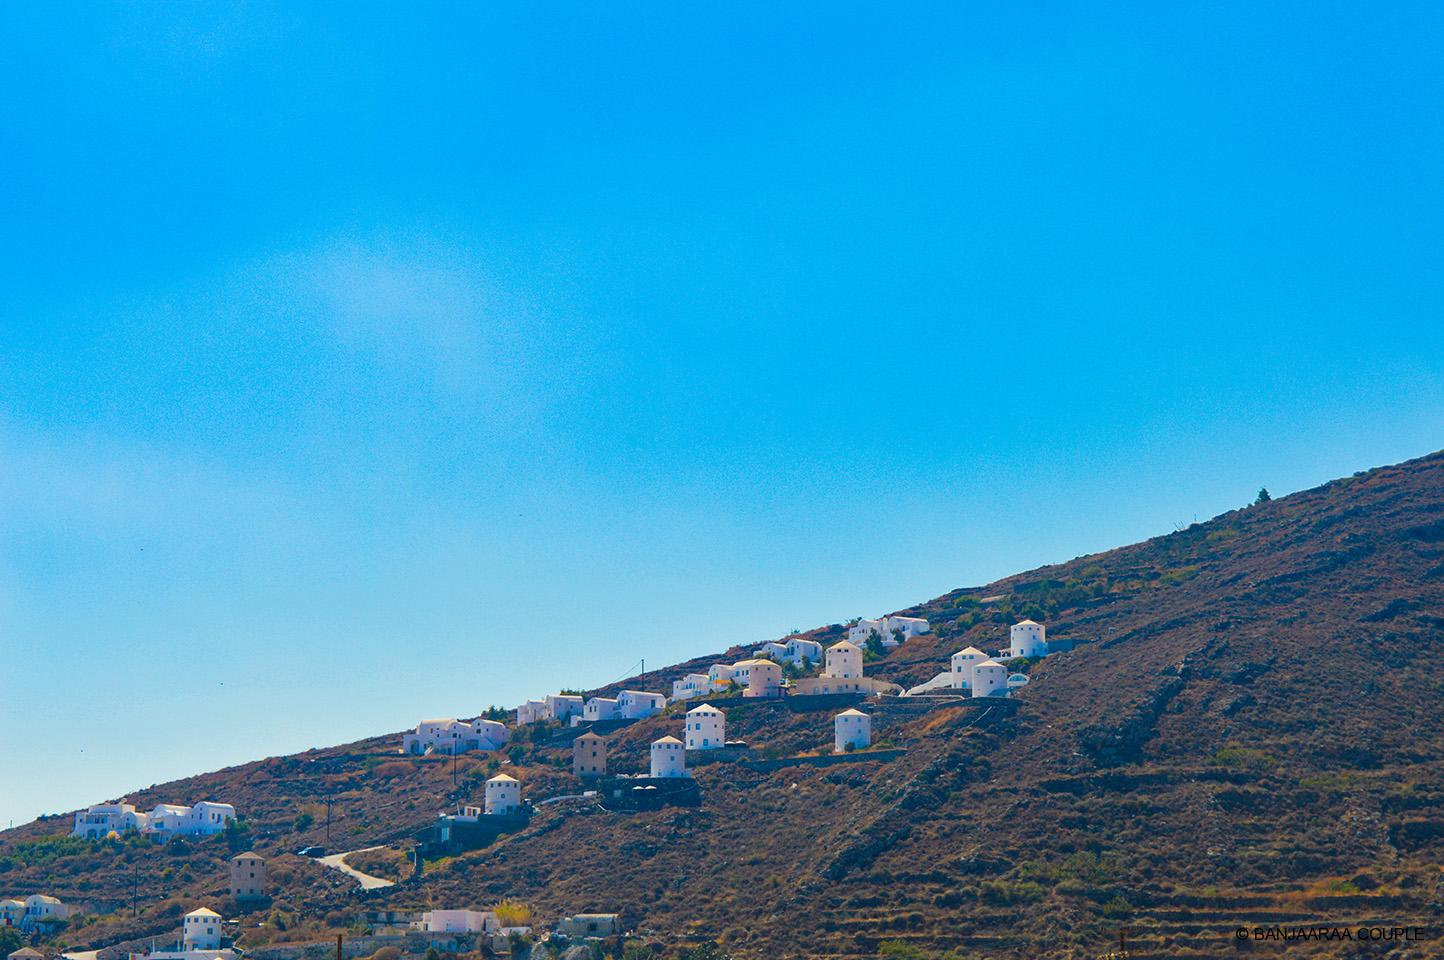 White washed houses strewn all over the landscape of Santorini